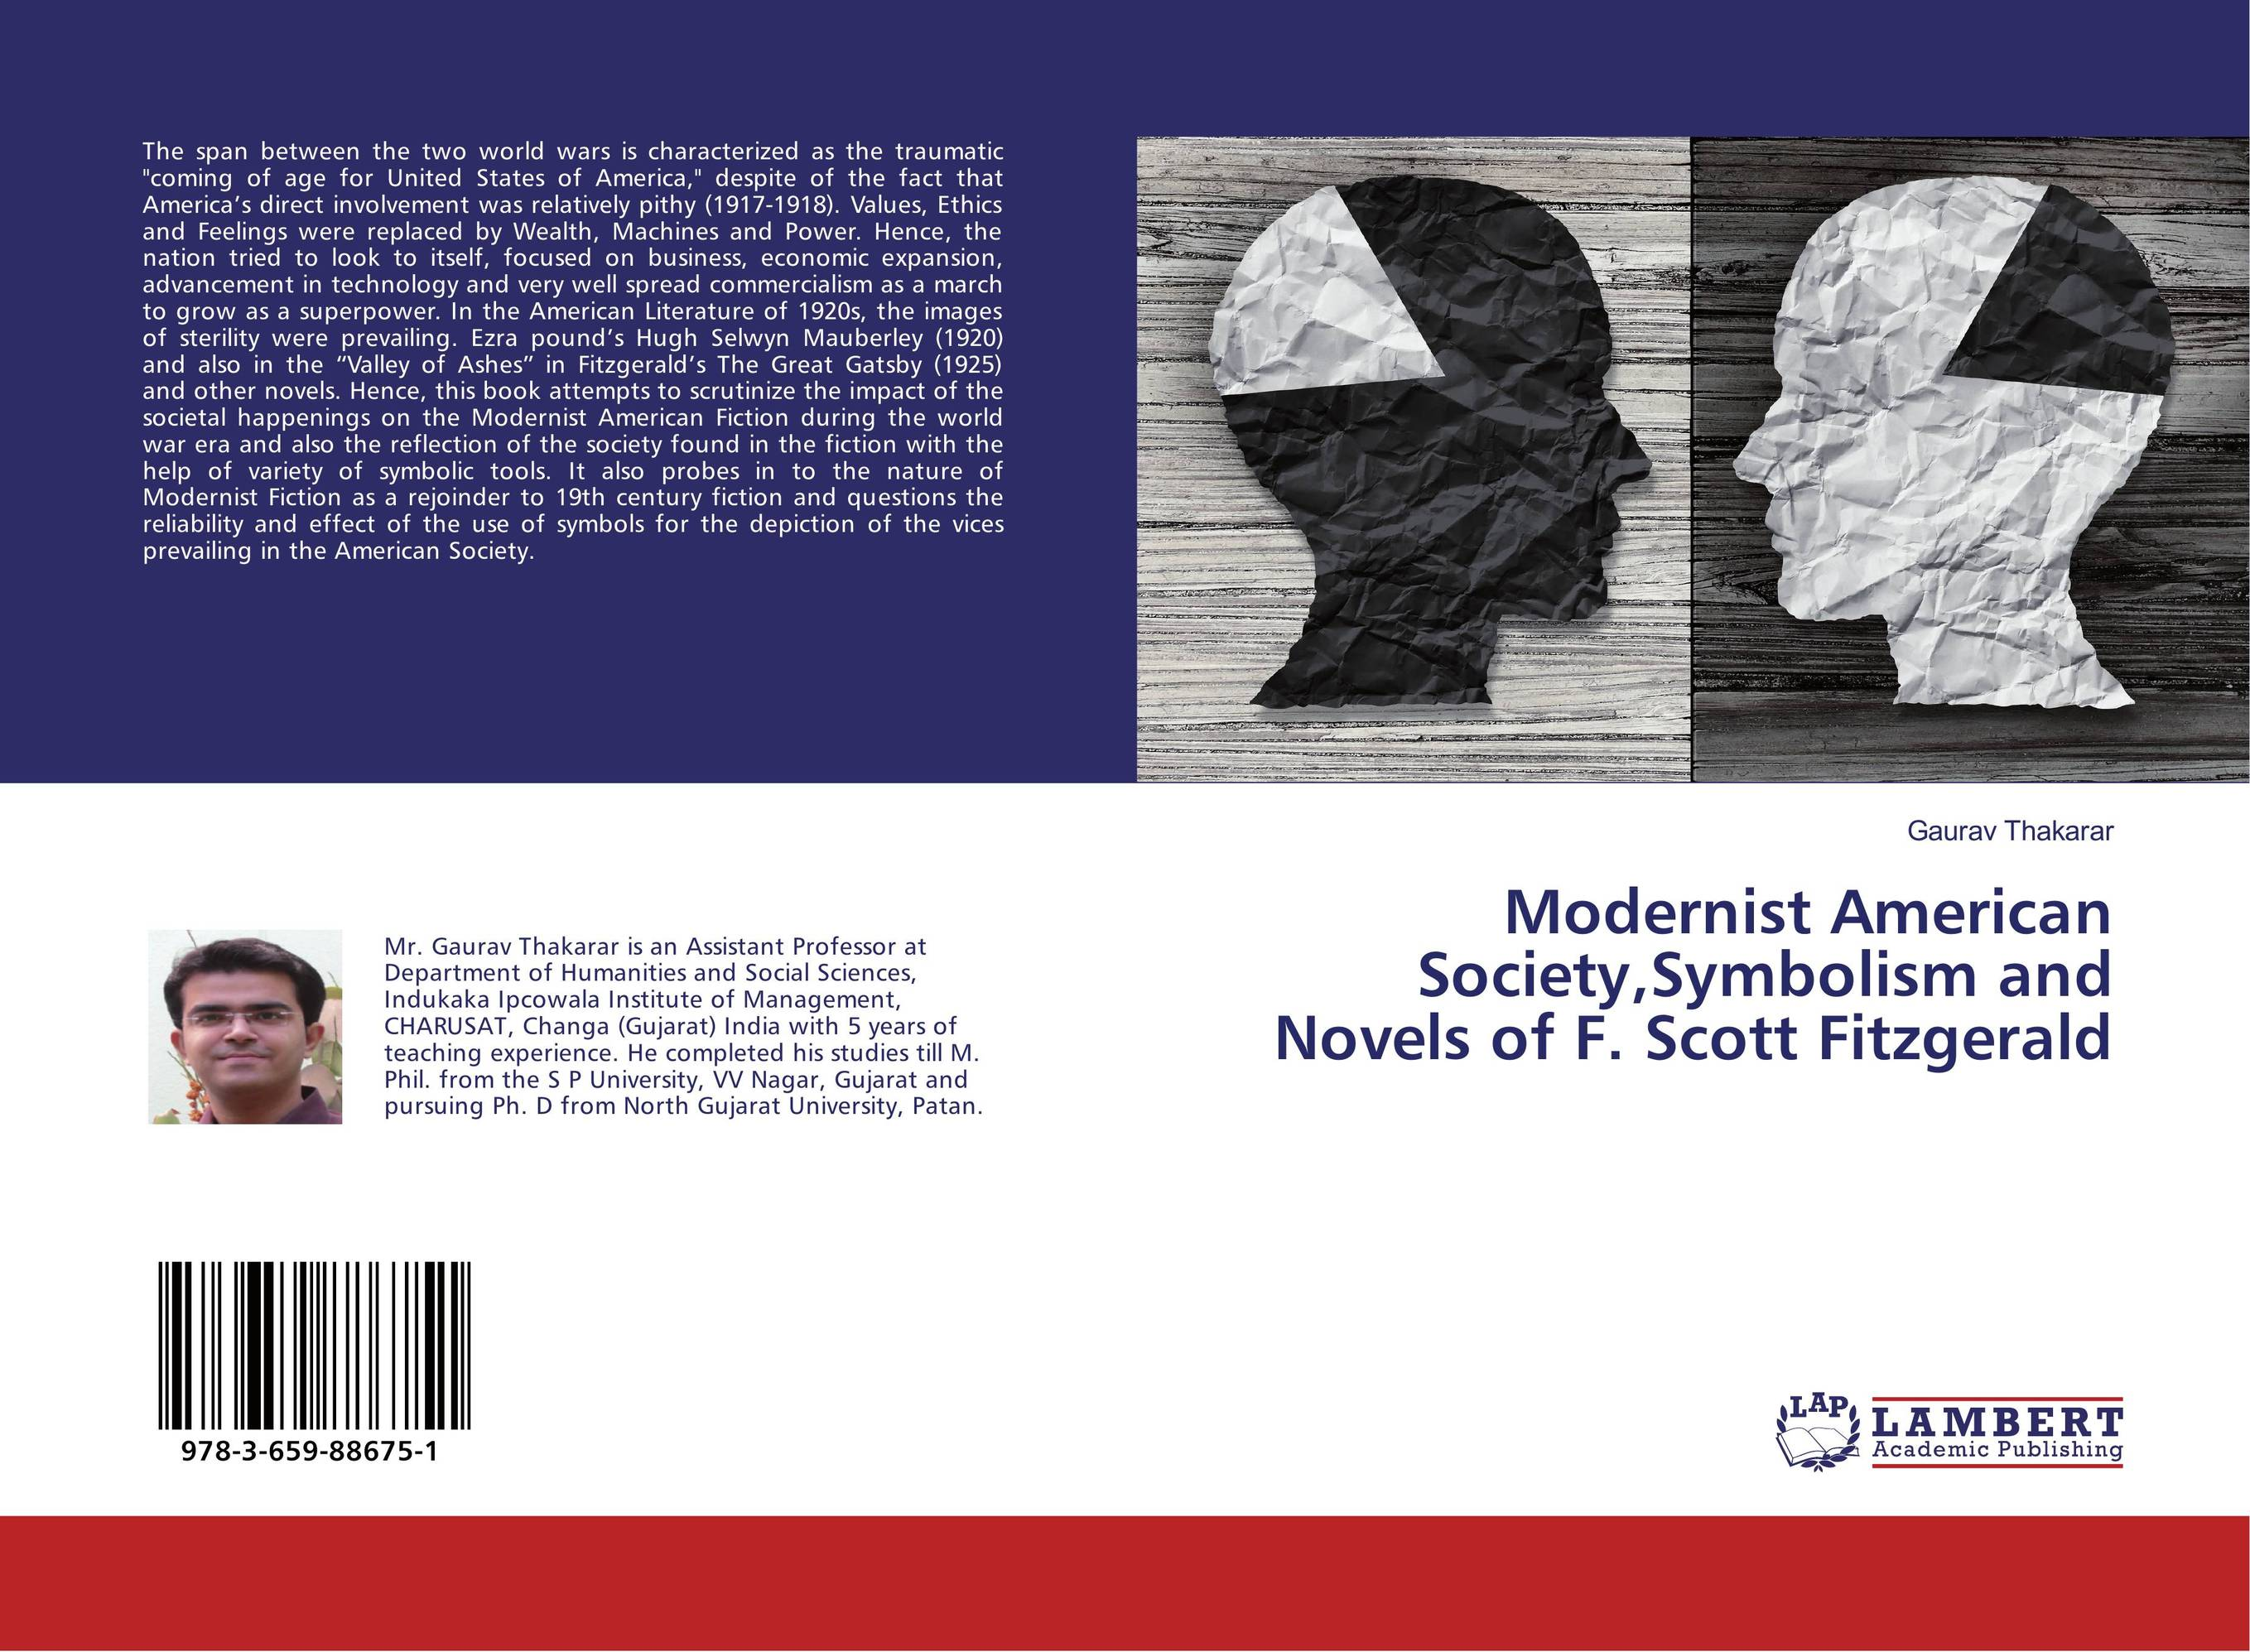 Modernist American Society,Symbolism and Novels of F. Scott Fitzgerald voluntary associations in tsarist russia – science patriotism and civil society